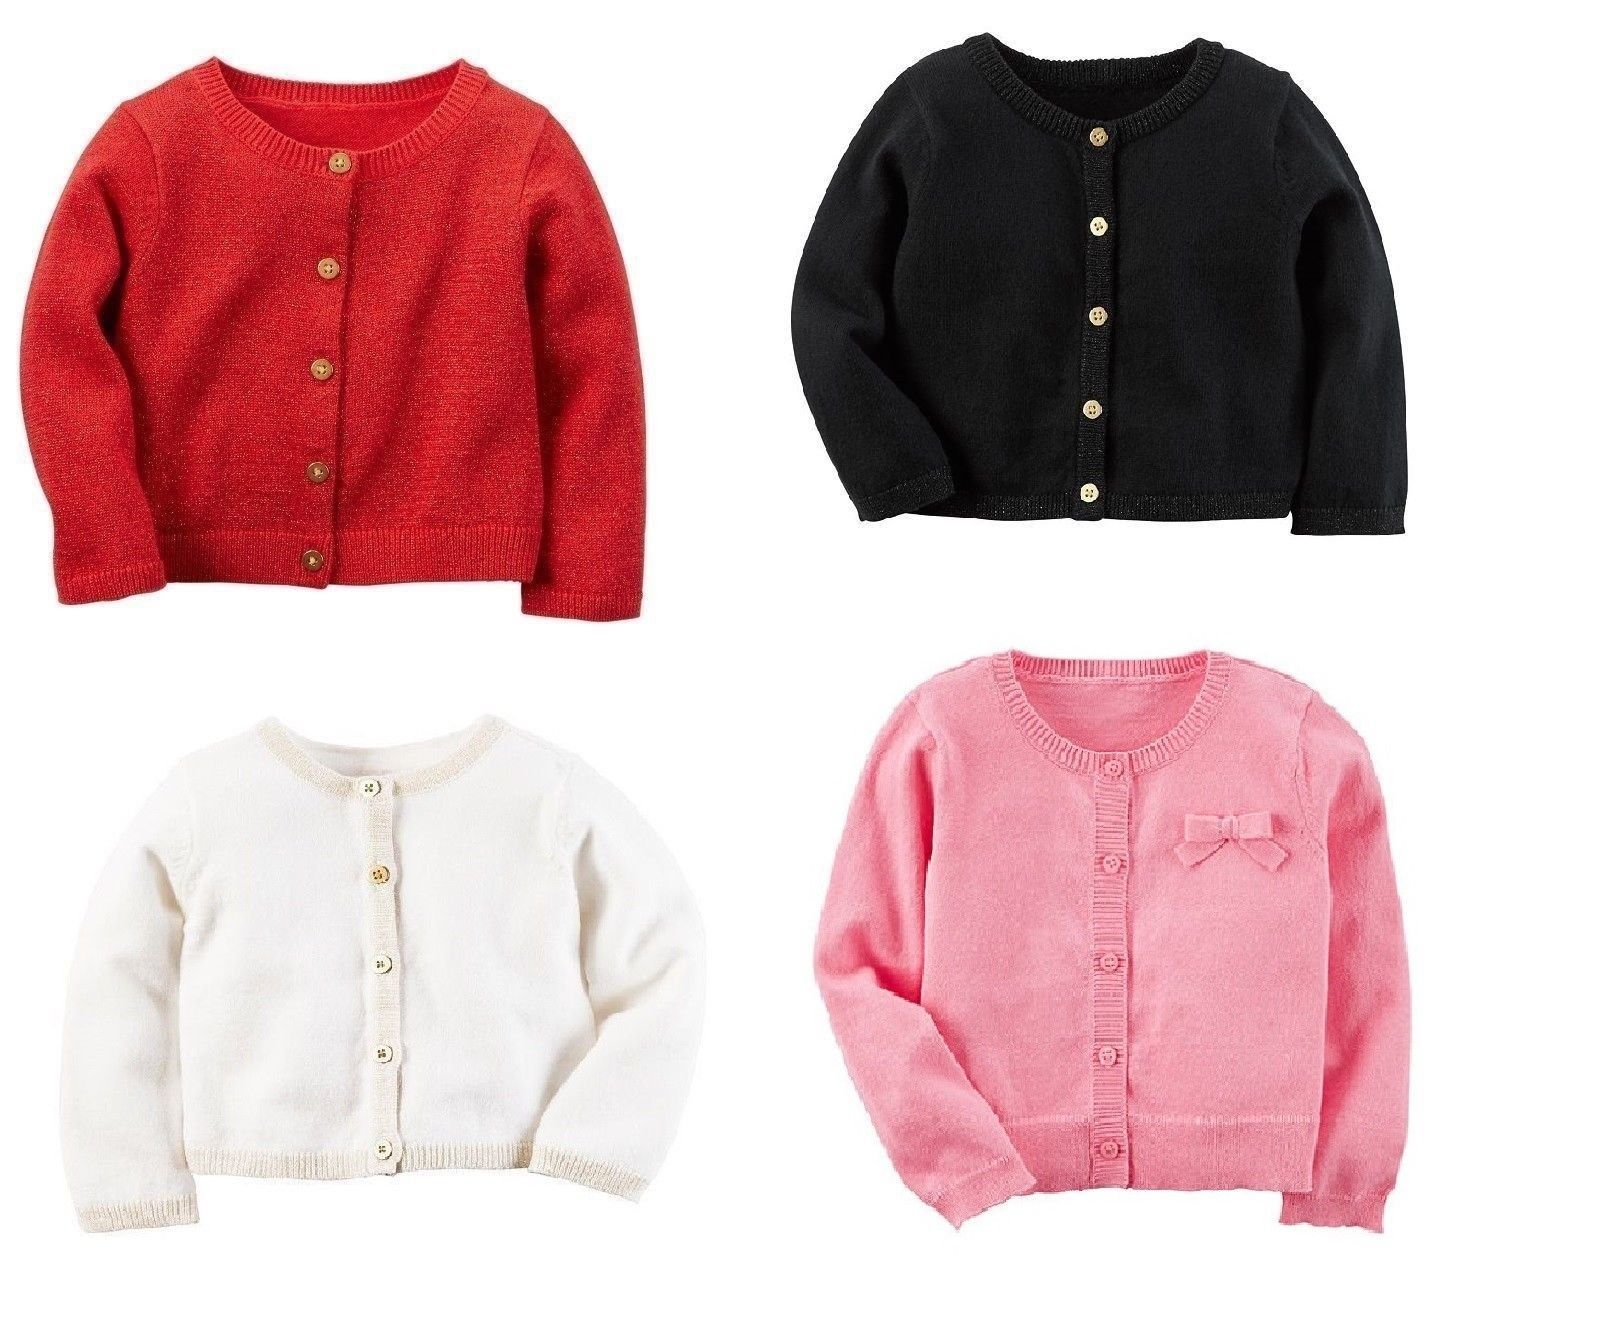 01a9abbf3f0 Sweaters 147216  Nwt Carters Infant Girls Dressy Sparkle Cardigan Sweater  Many Colors And Styles -  BUY IT NOW ONLY   12.99 on  eBay  sweaters   carters ...